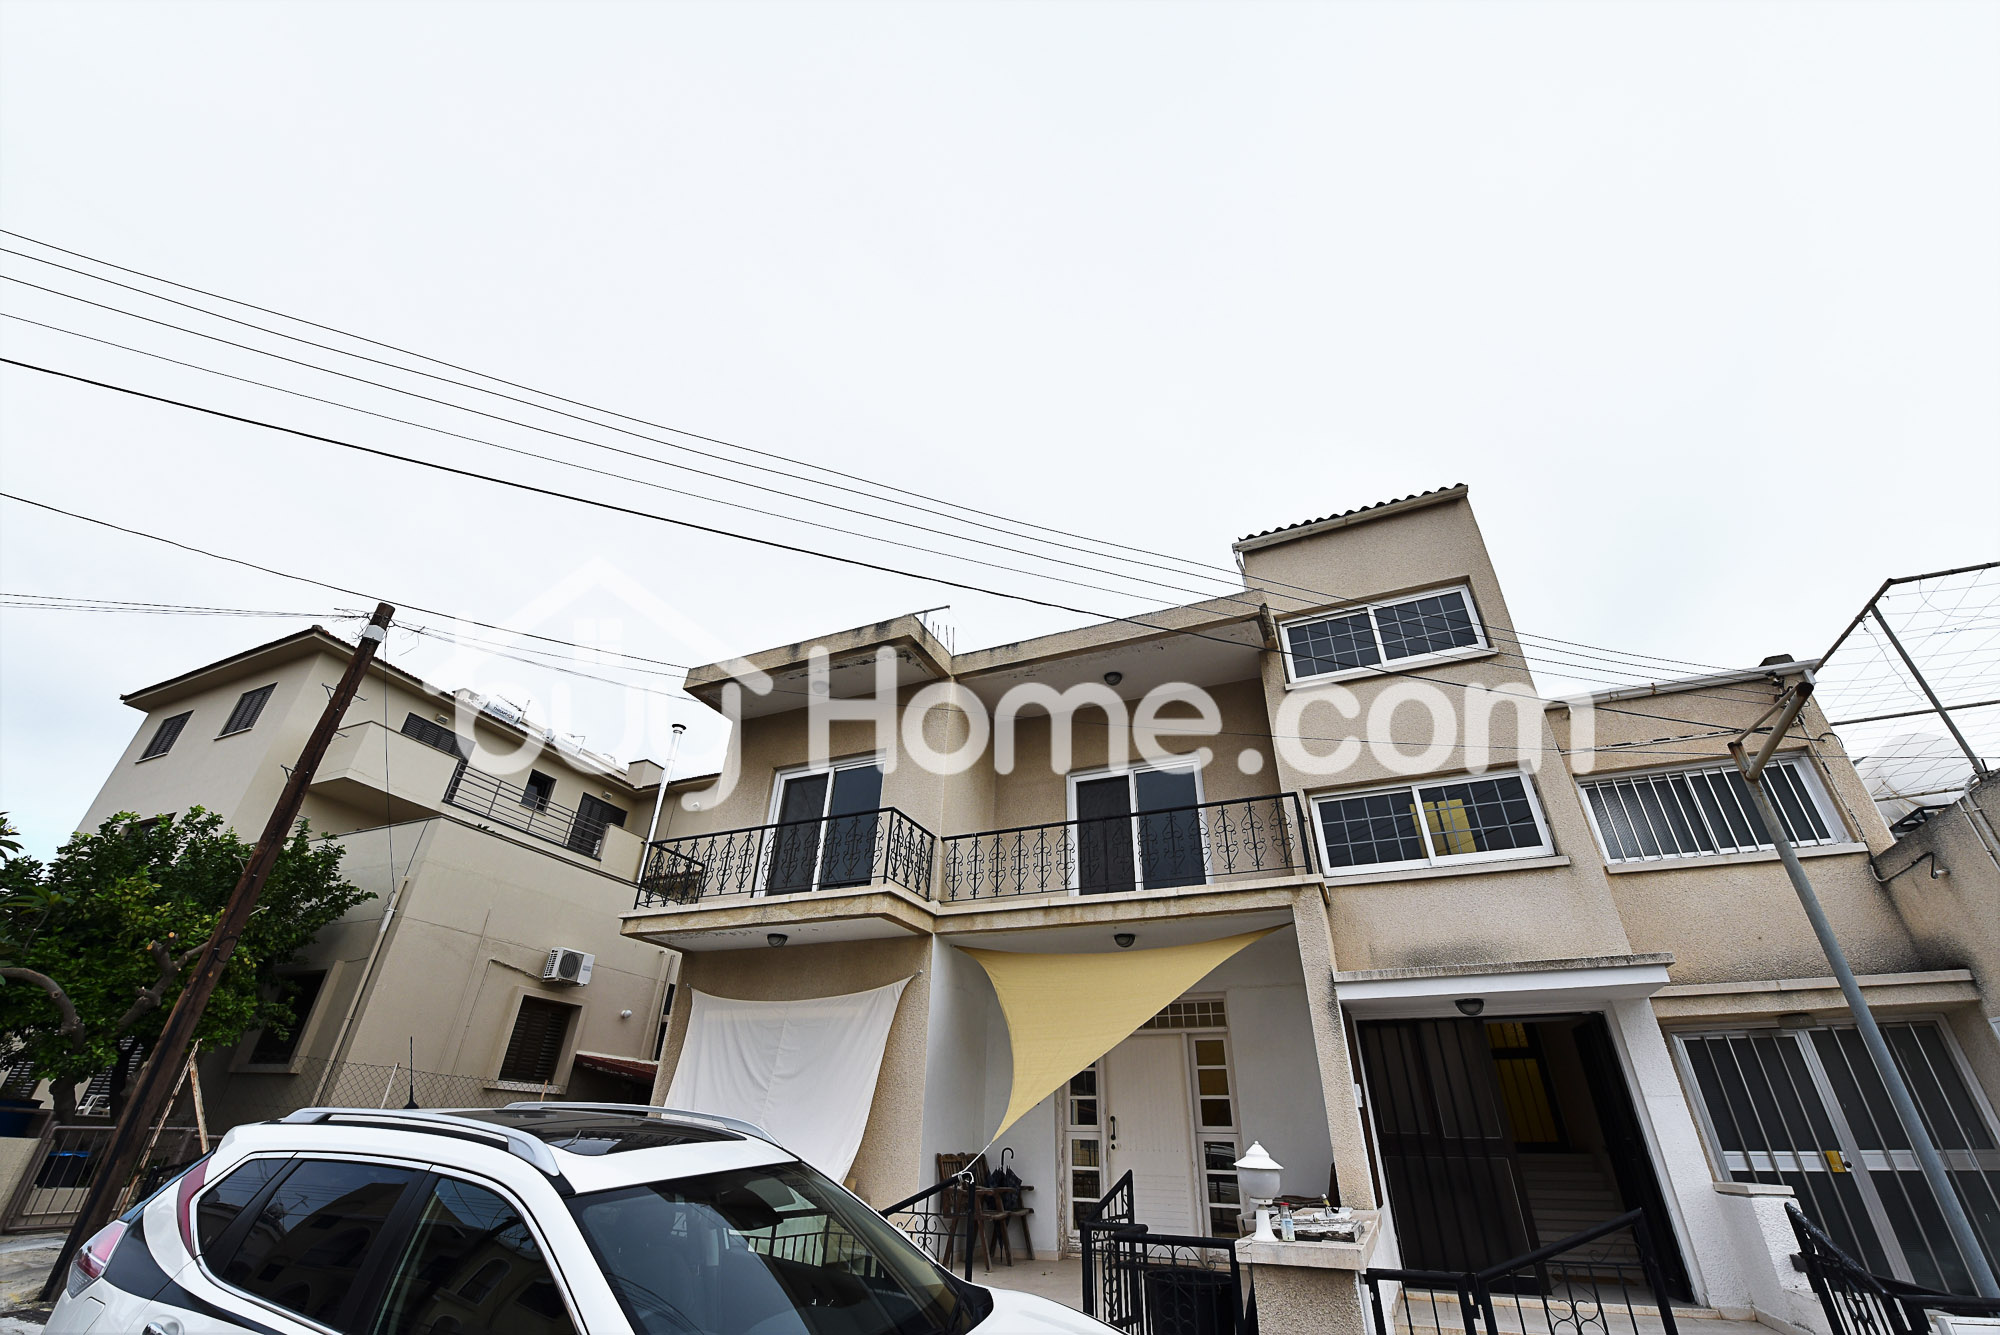 3 Bedroom Upstairs House | BuyHome